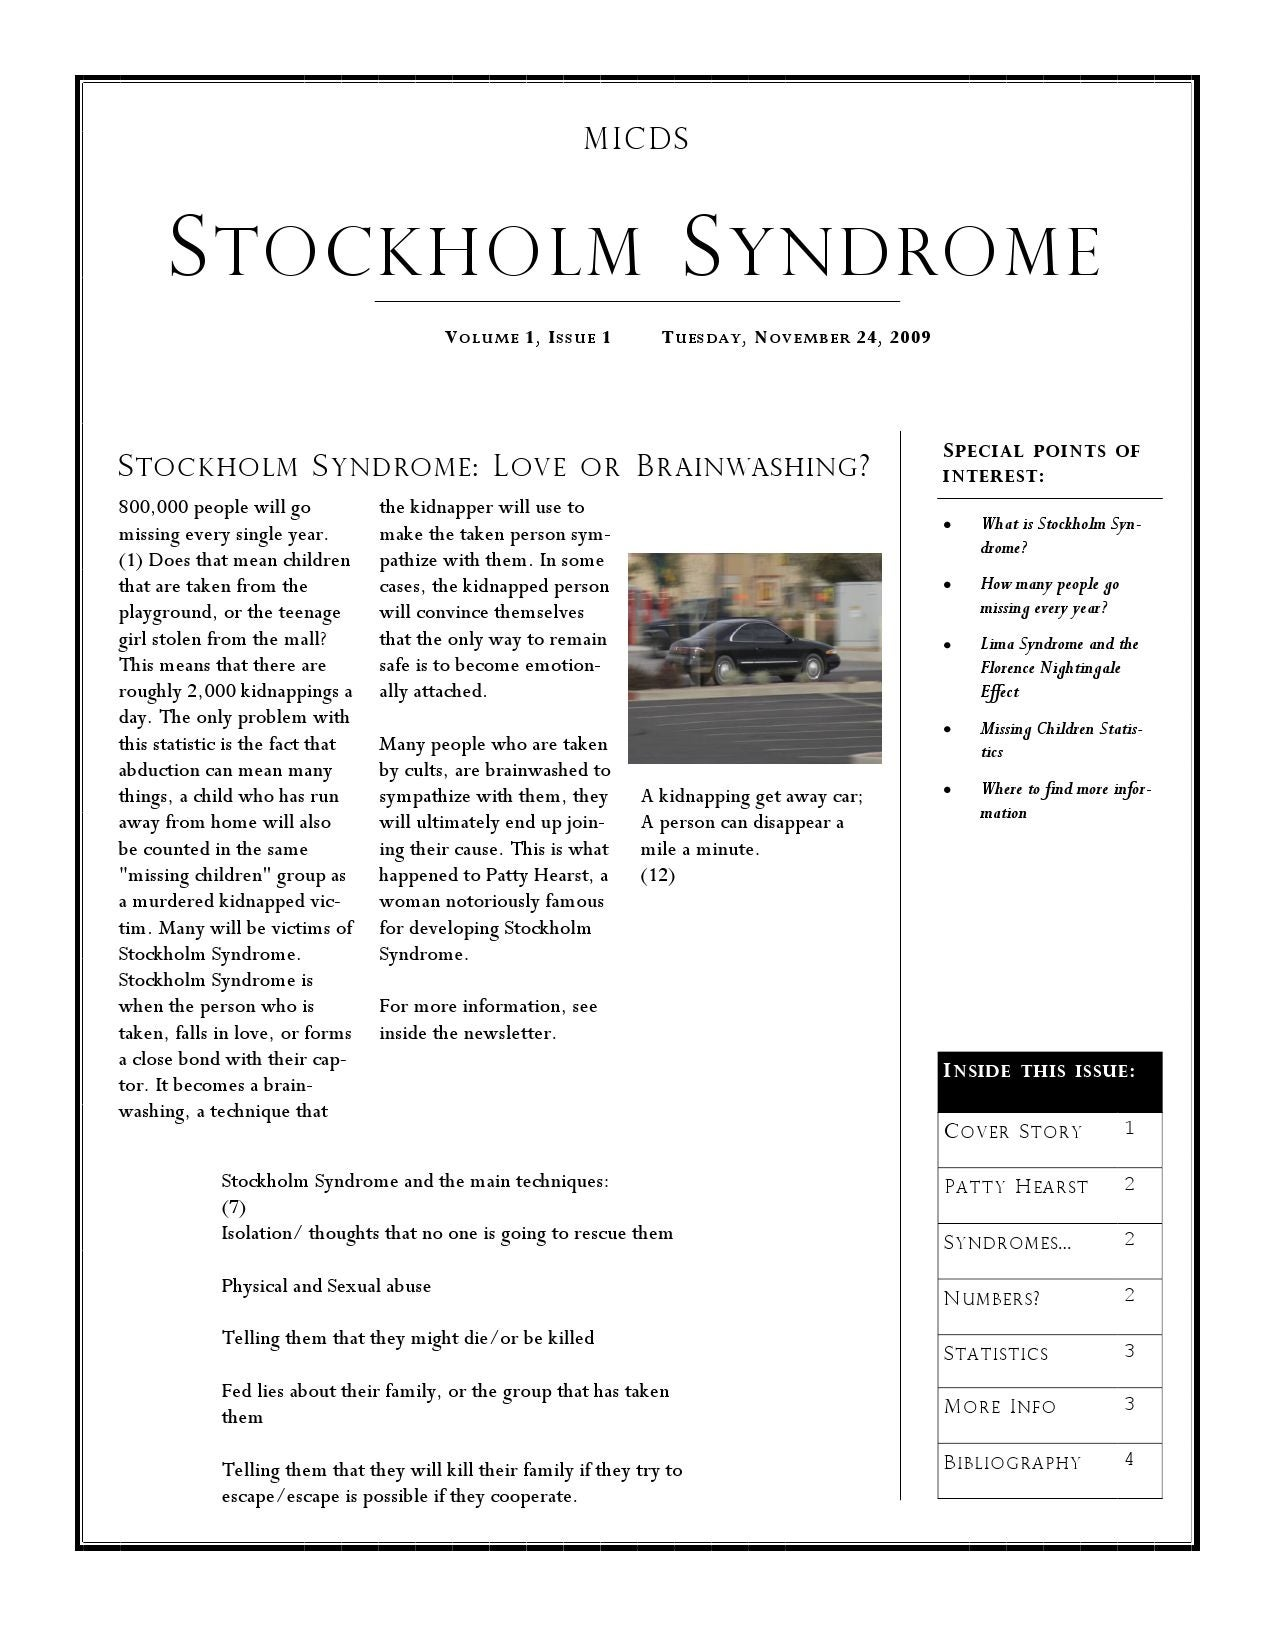 famous cases of stockholm syndrome